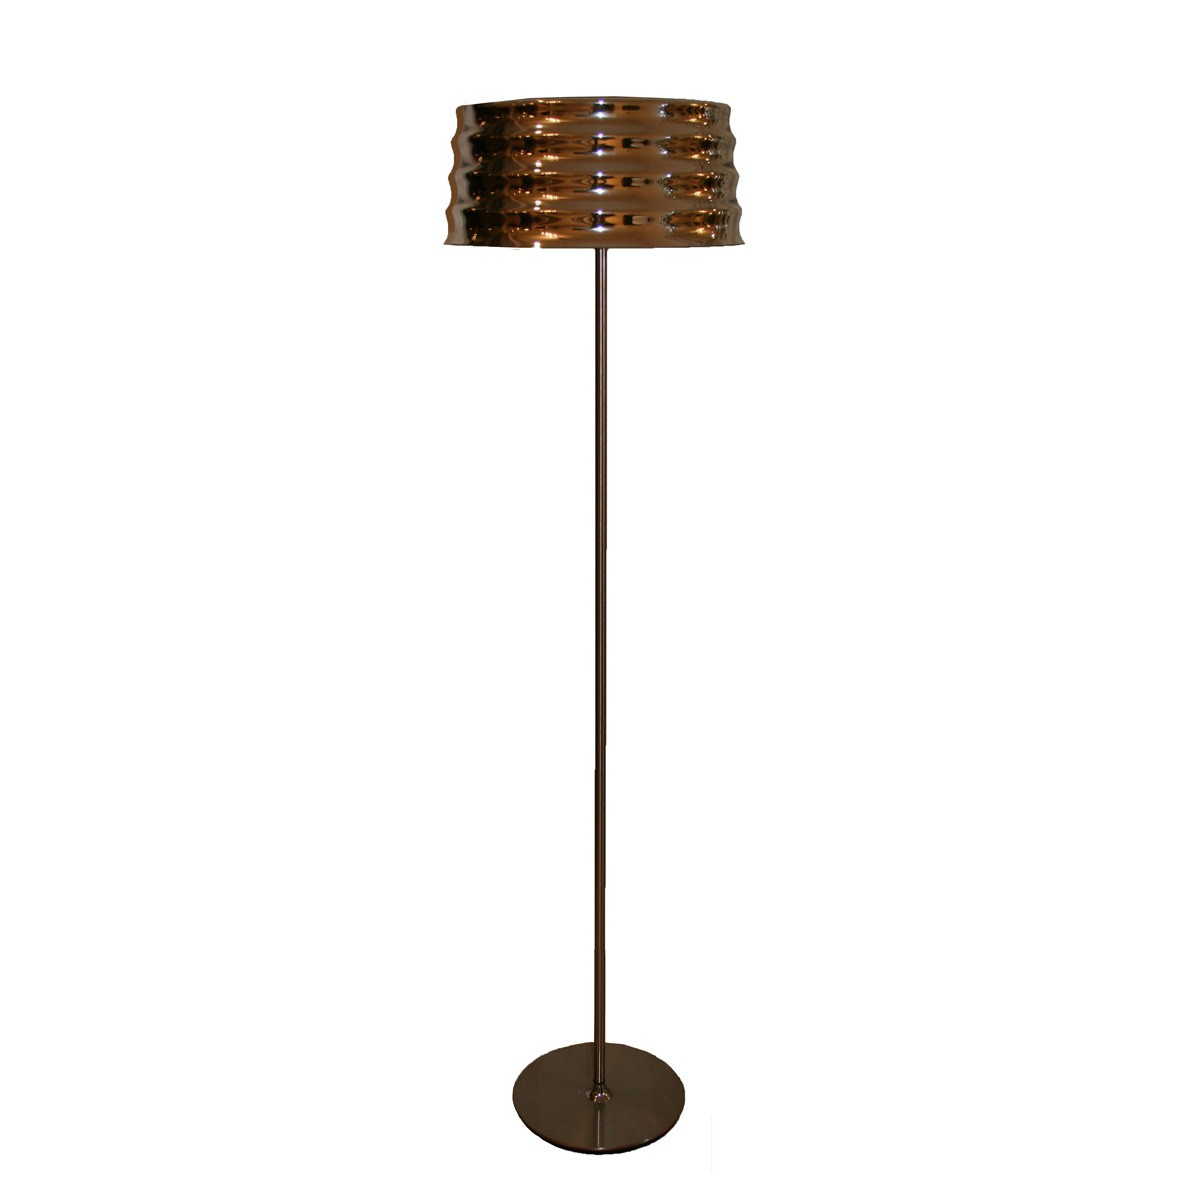 Penta Light CHI Floor Lamp Outlet Desoutcom